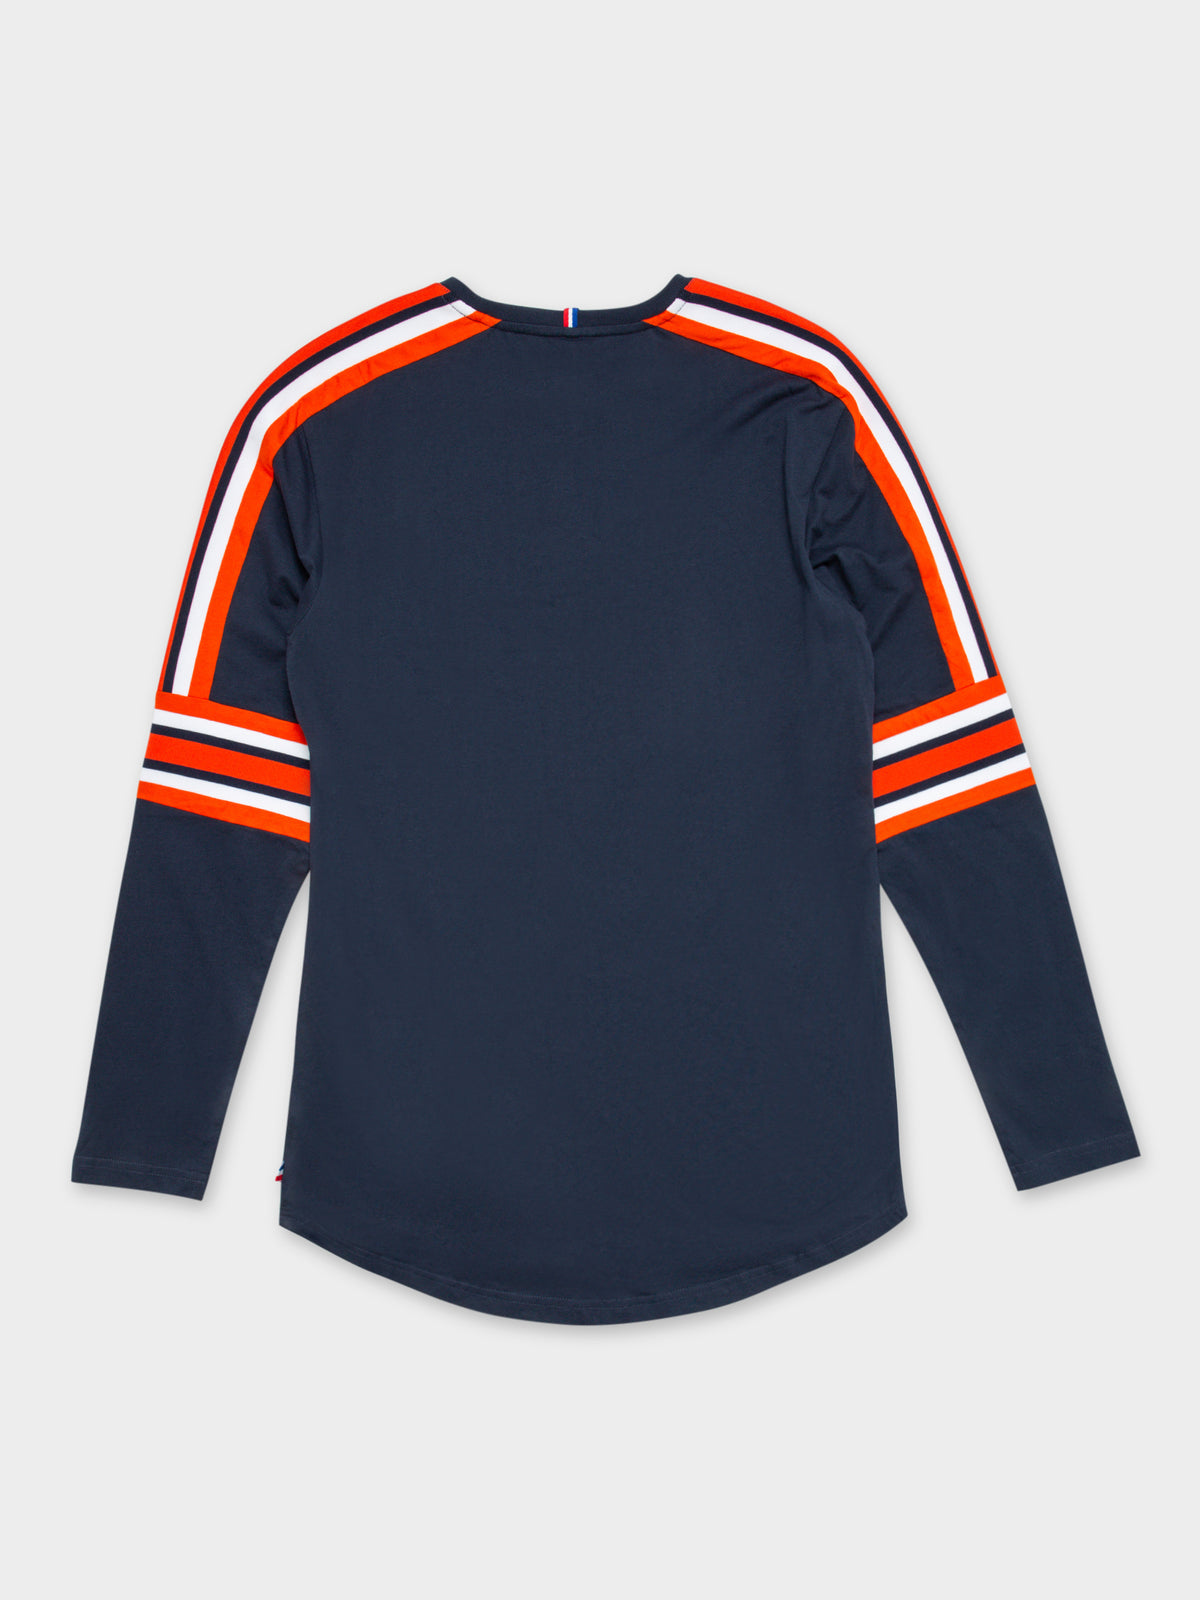 Epinal Long Sleeve T-Shirt in Dress Blues